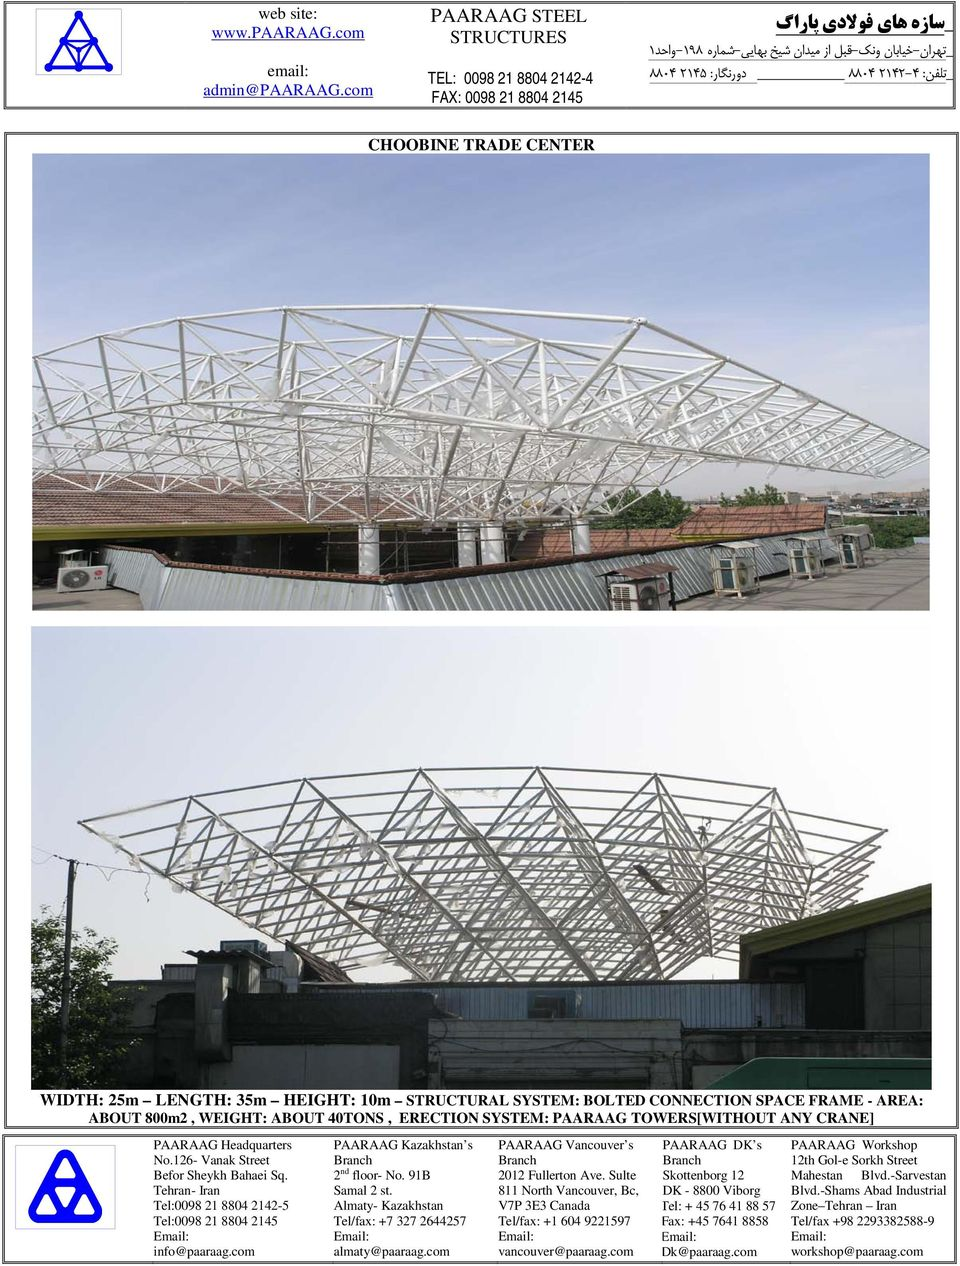 SPACE FRAME - AREA: ABOUT 800m2, WEIGHT: ABOUT